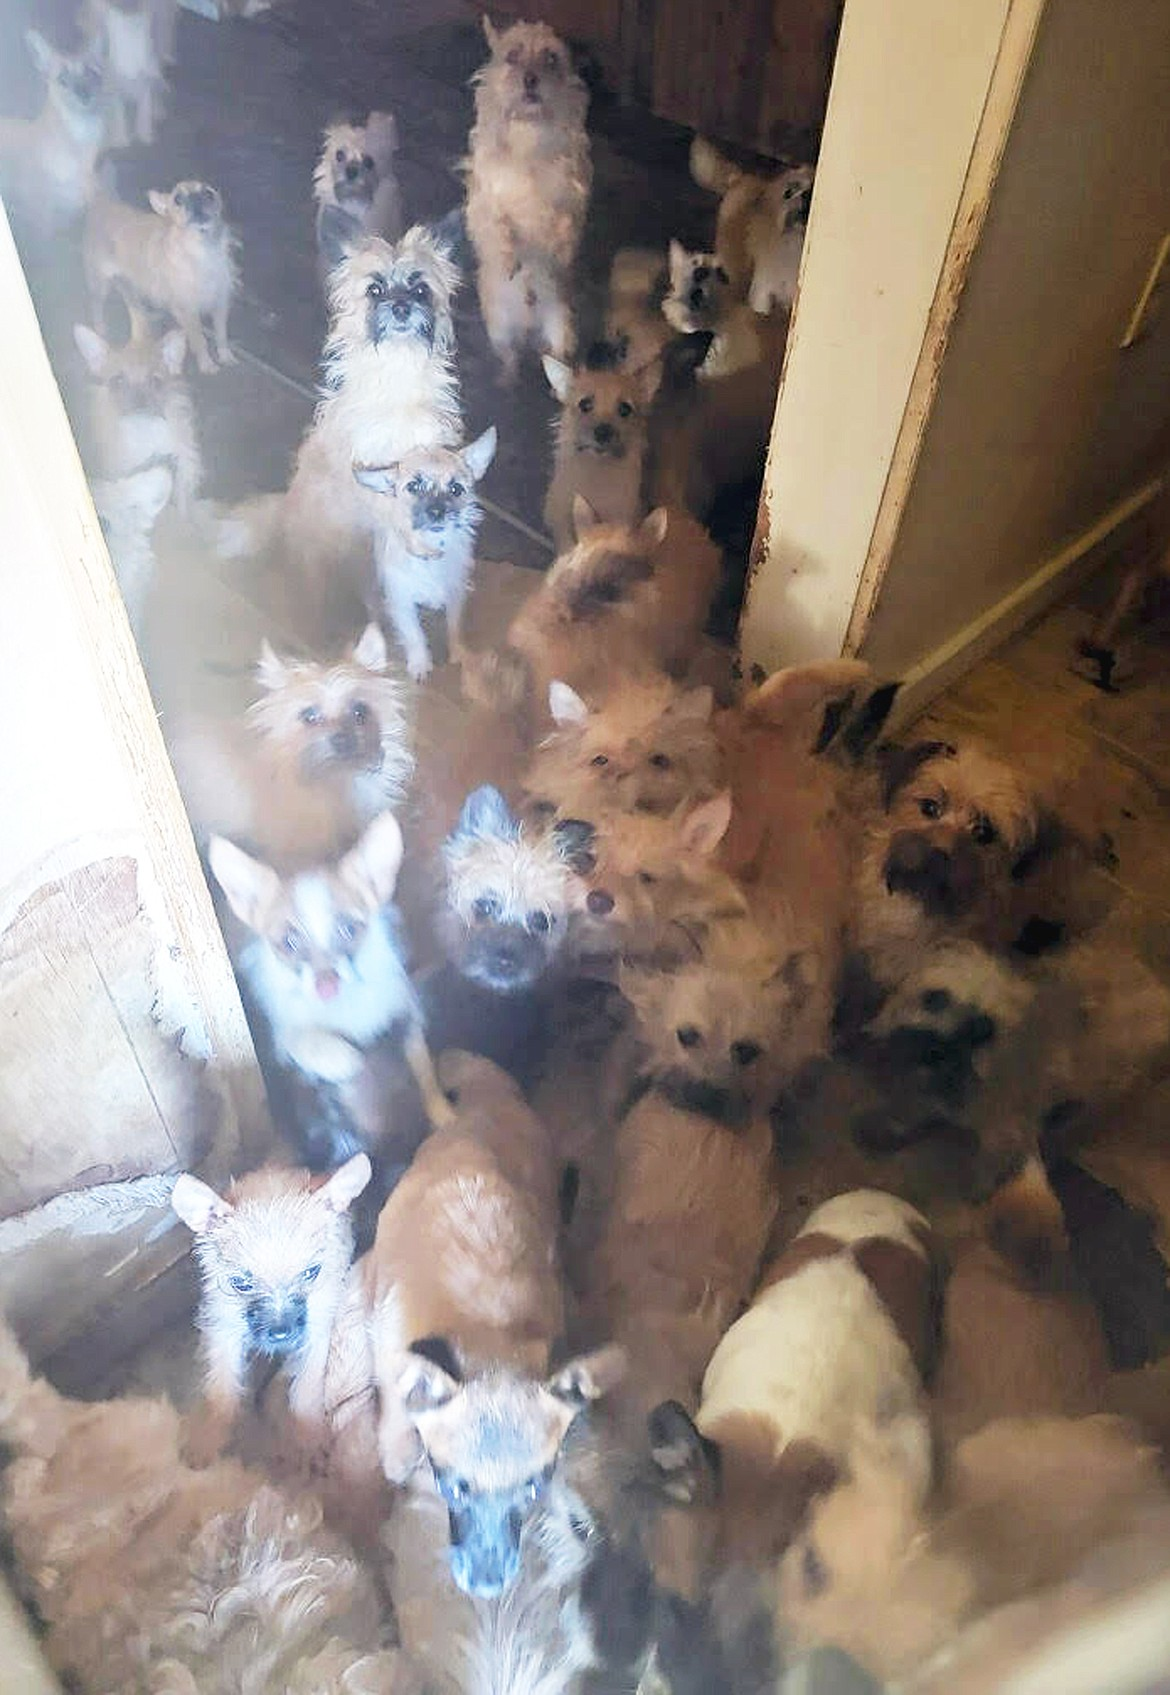 Photo courtesy Kootenai Humane Society Some of the dogs in a Kellogg hoarding situation look up as people enter the house on Monday.